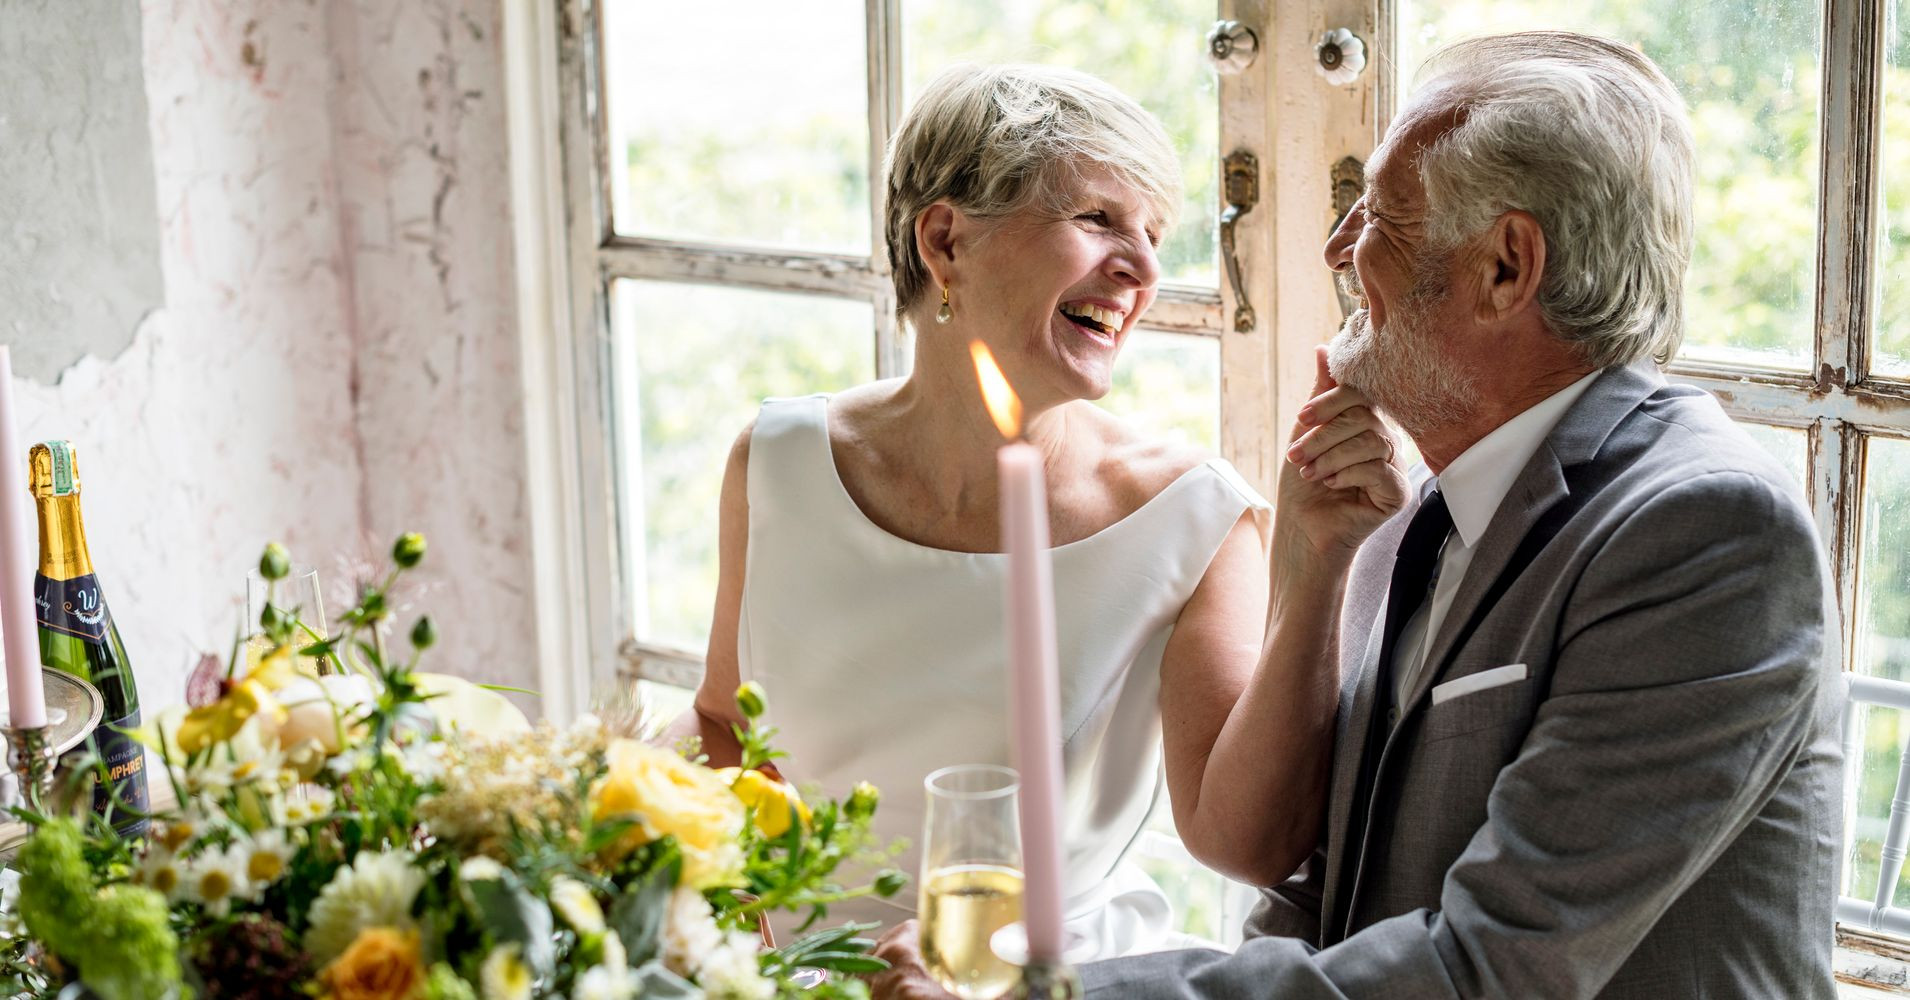 Gift Ideas For Older Couple Getting Married  27 Wedding Gifts For Older Couples Marrying The Second